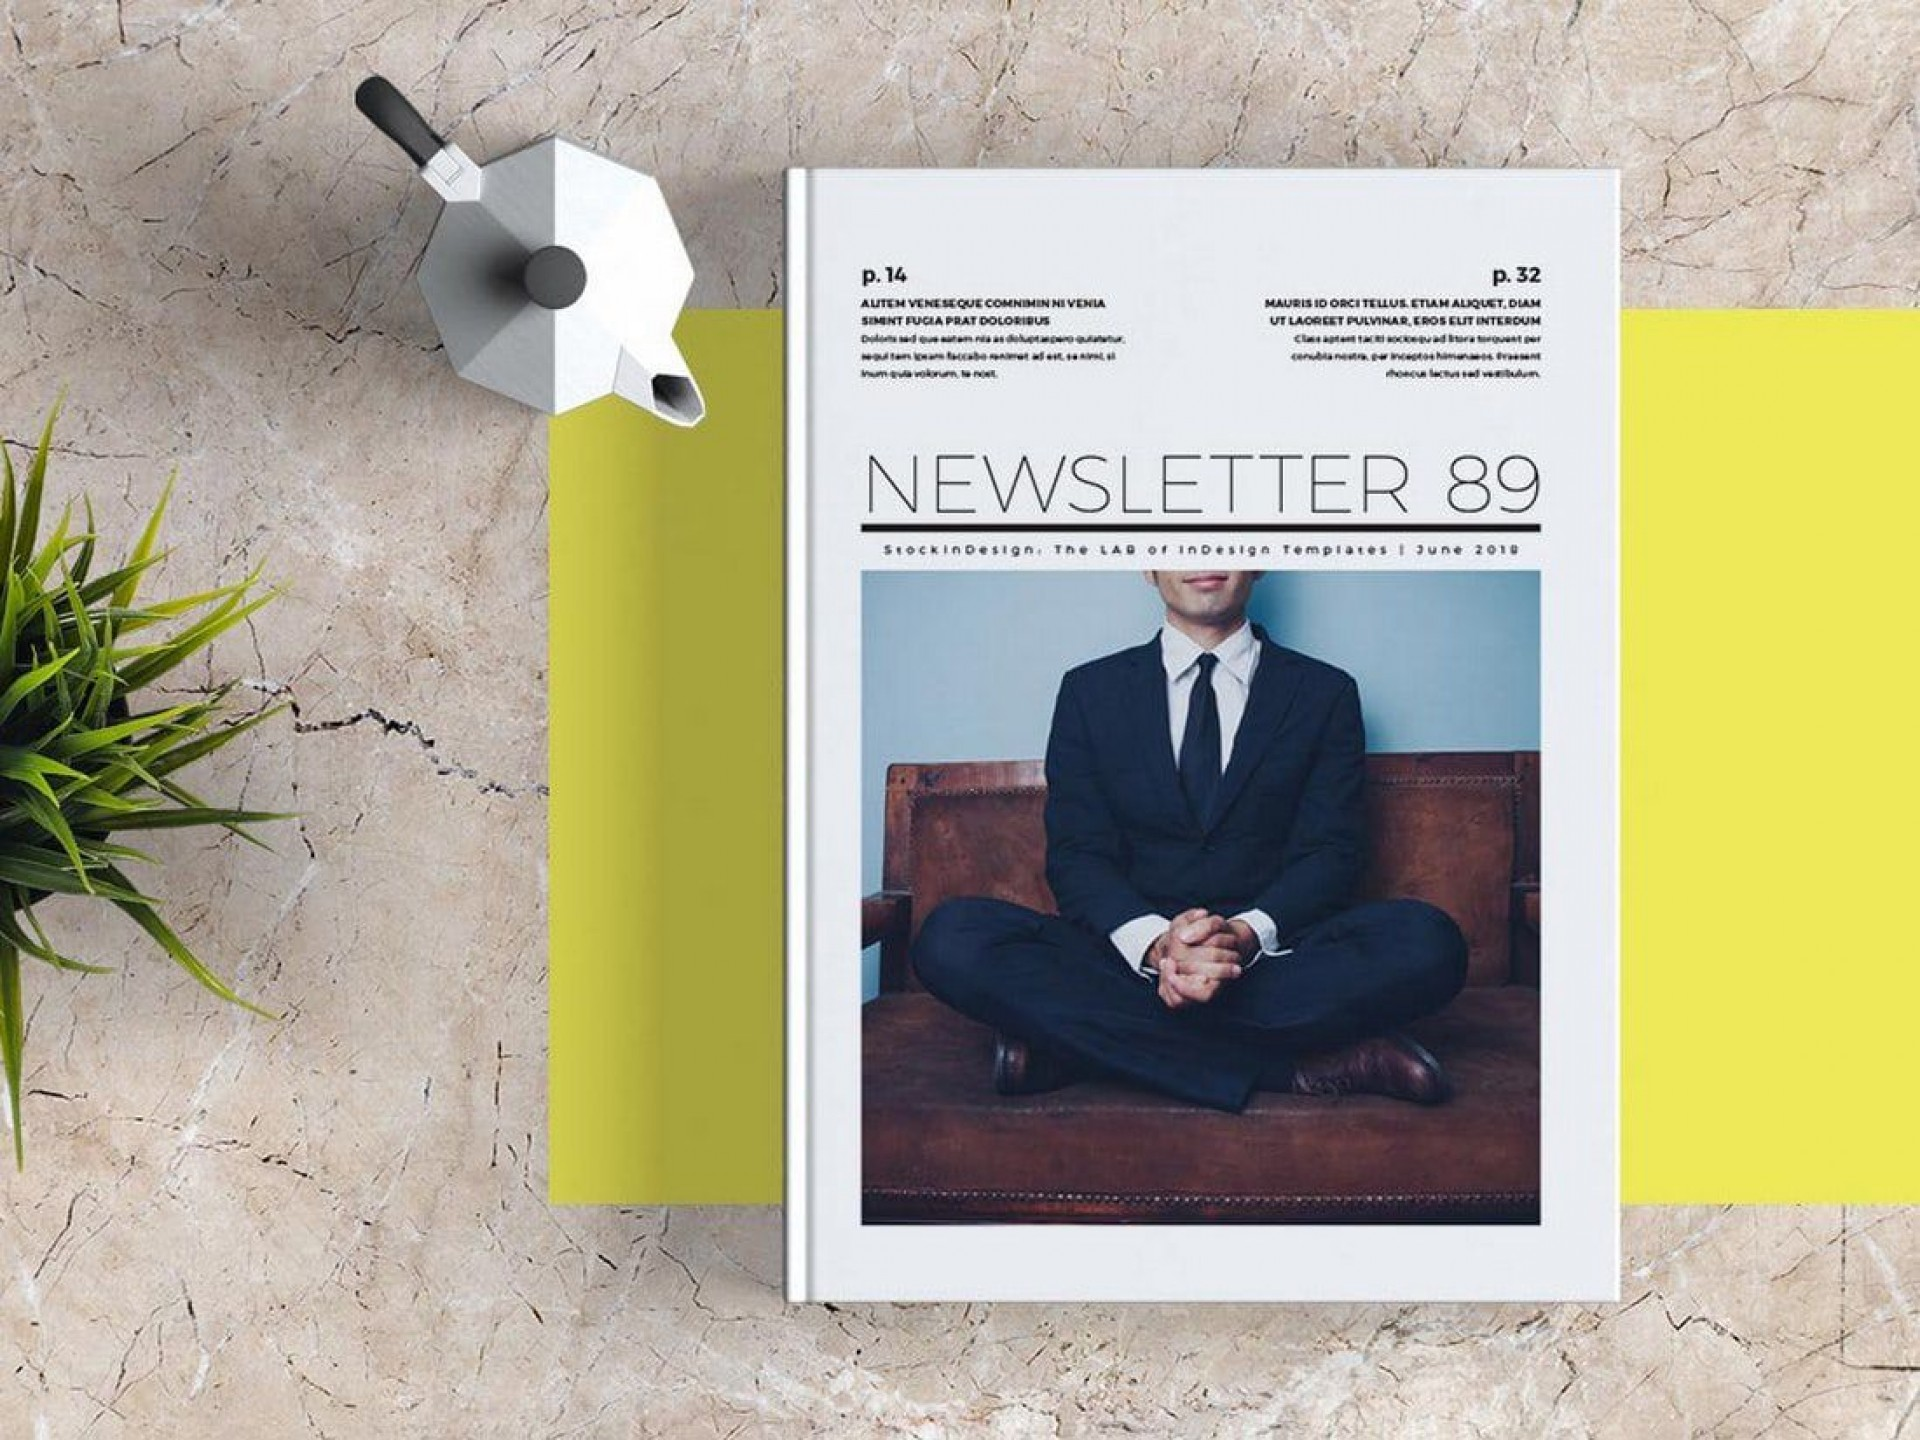 001 Incredible Adobe Indesign Newsletter Template Free Download High Resolution 1920